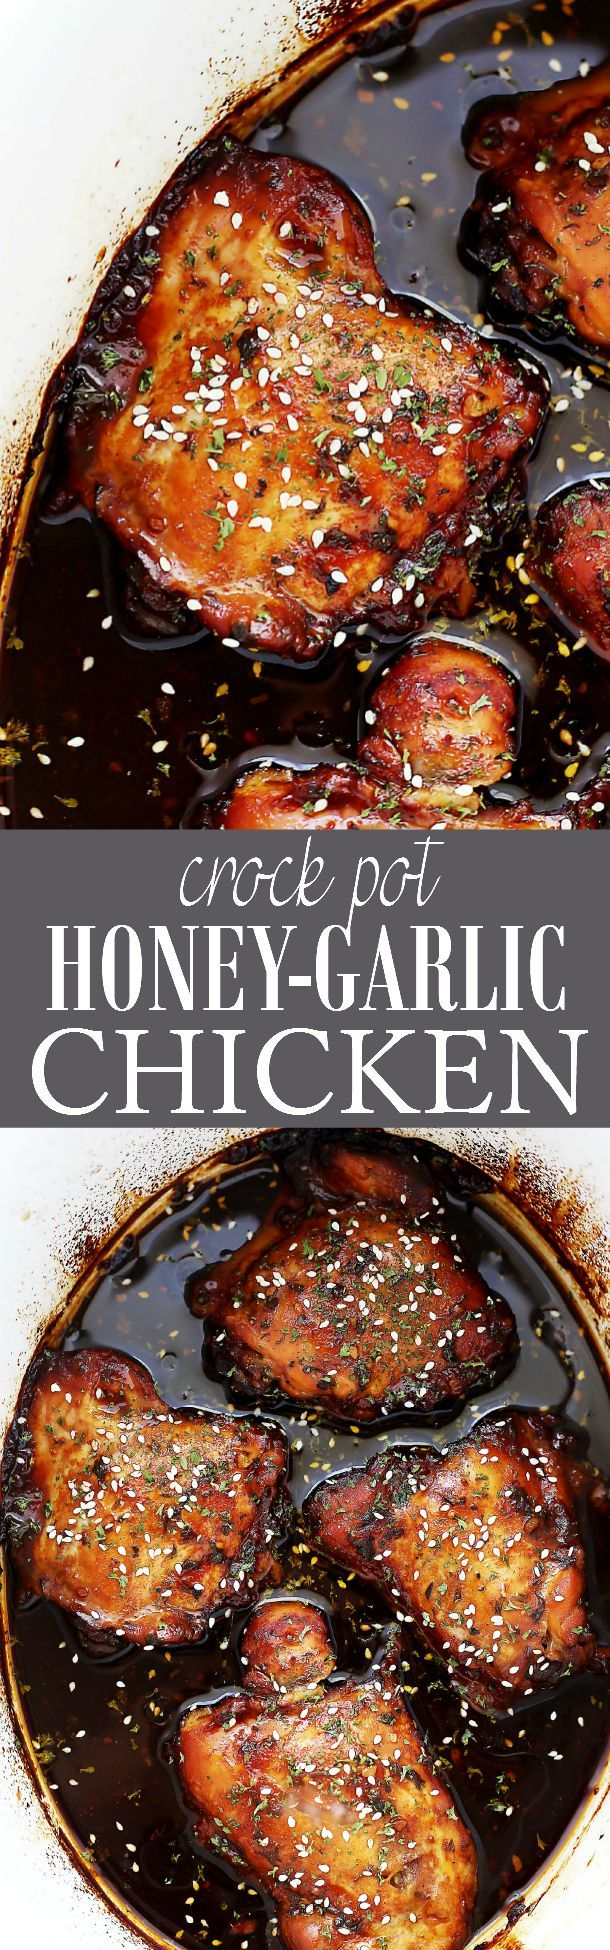 Crock Pot Honey Garlic Chicken - Easy crock pot recipe for chicken thighs cooked in an incredibly delicious honey-garlic sauce.